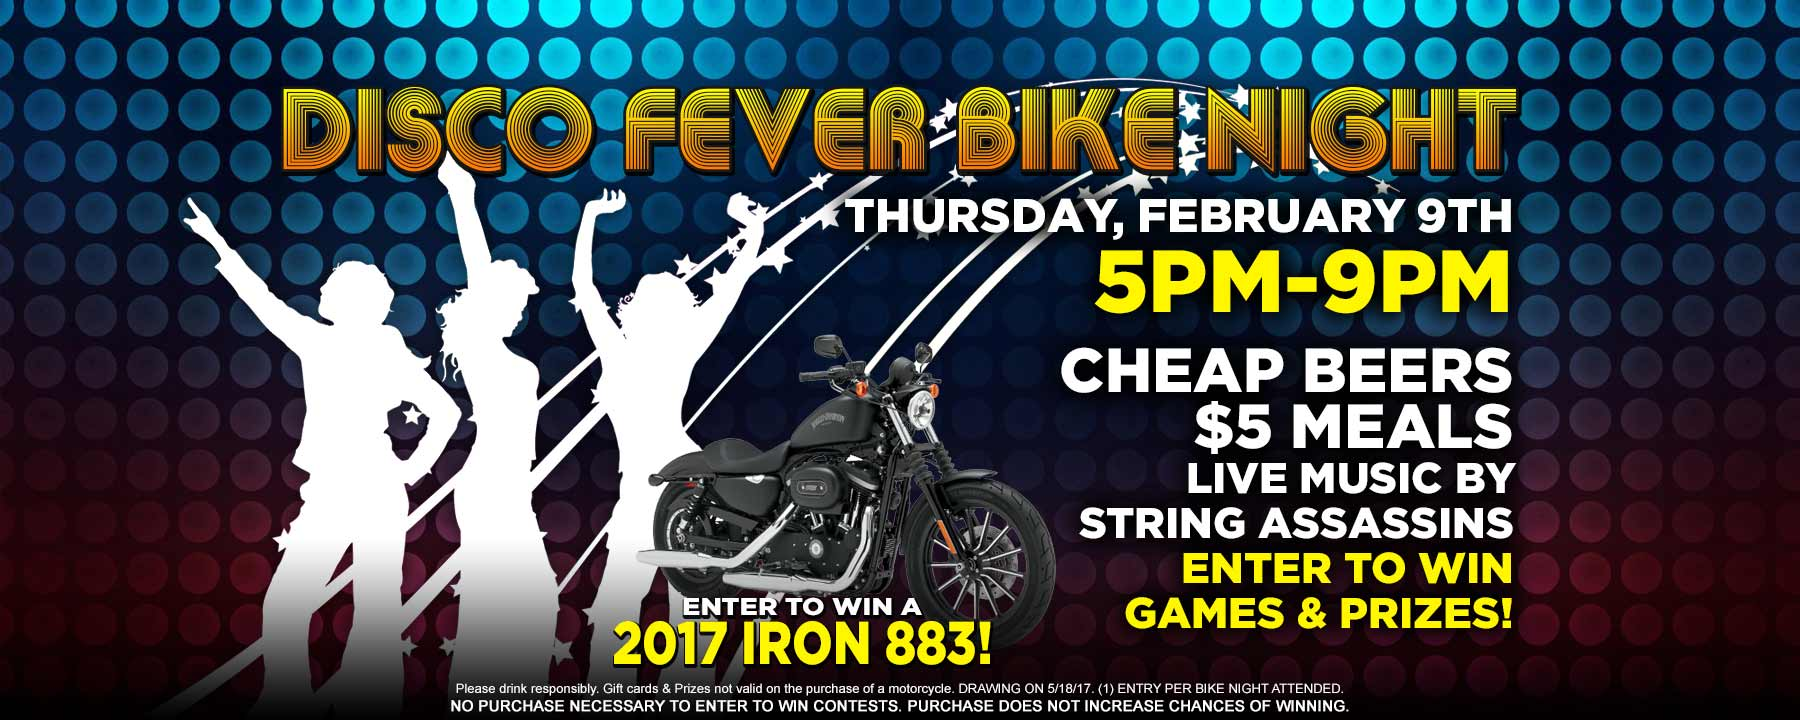 Palm Beach Harley Disco Fever Bike Night this Thursday 5-9pm